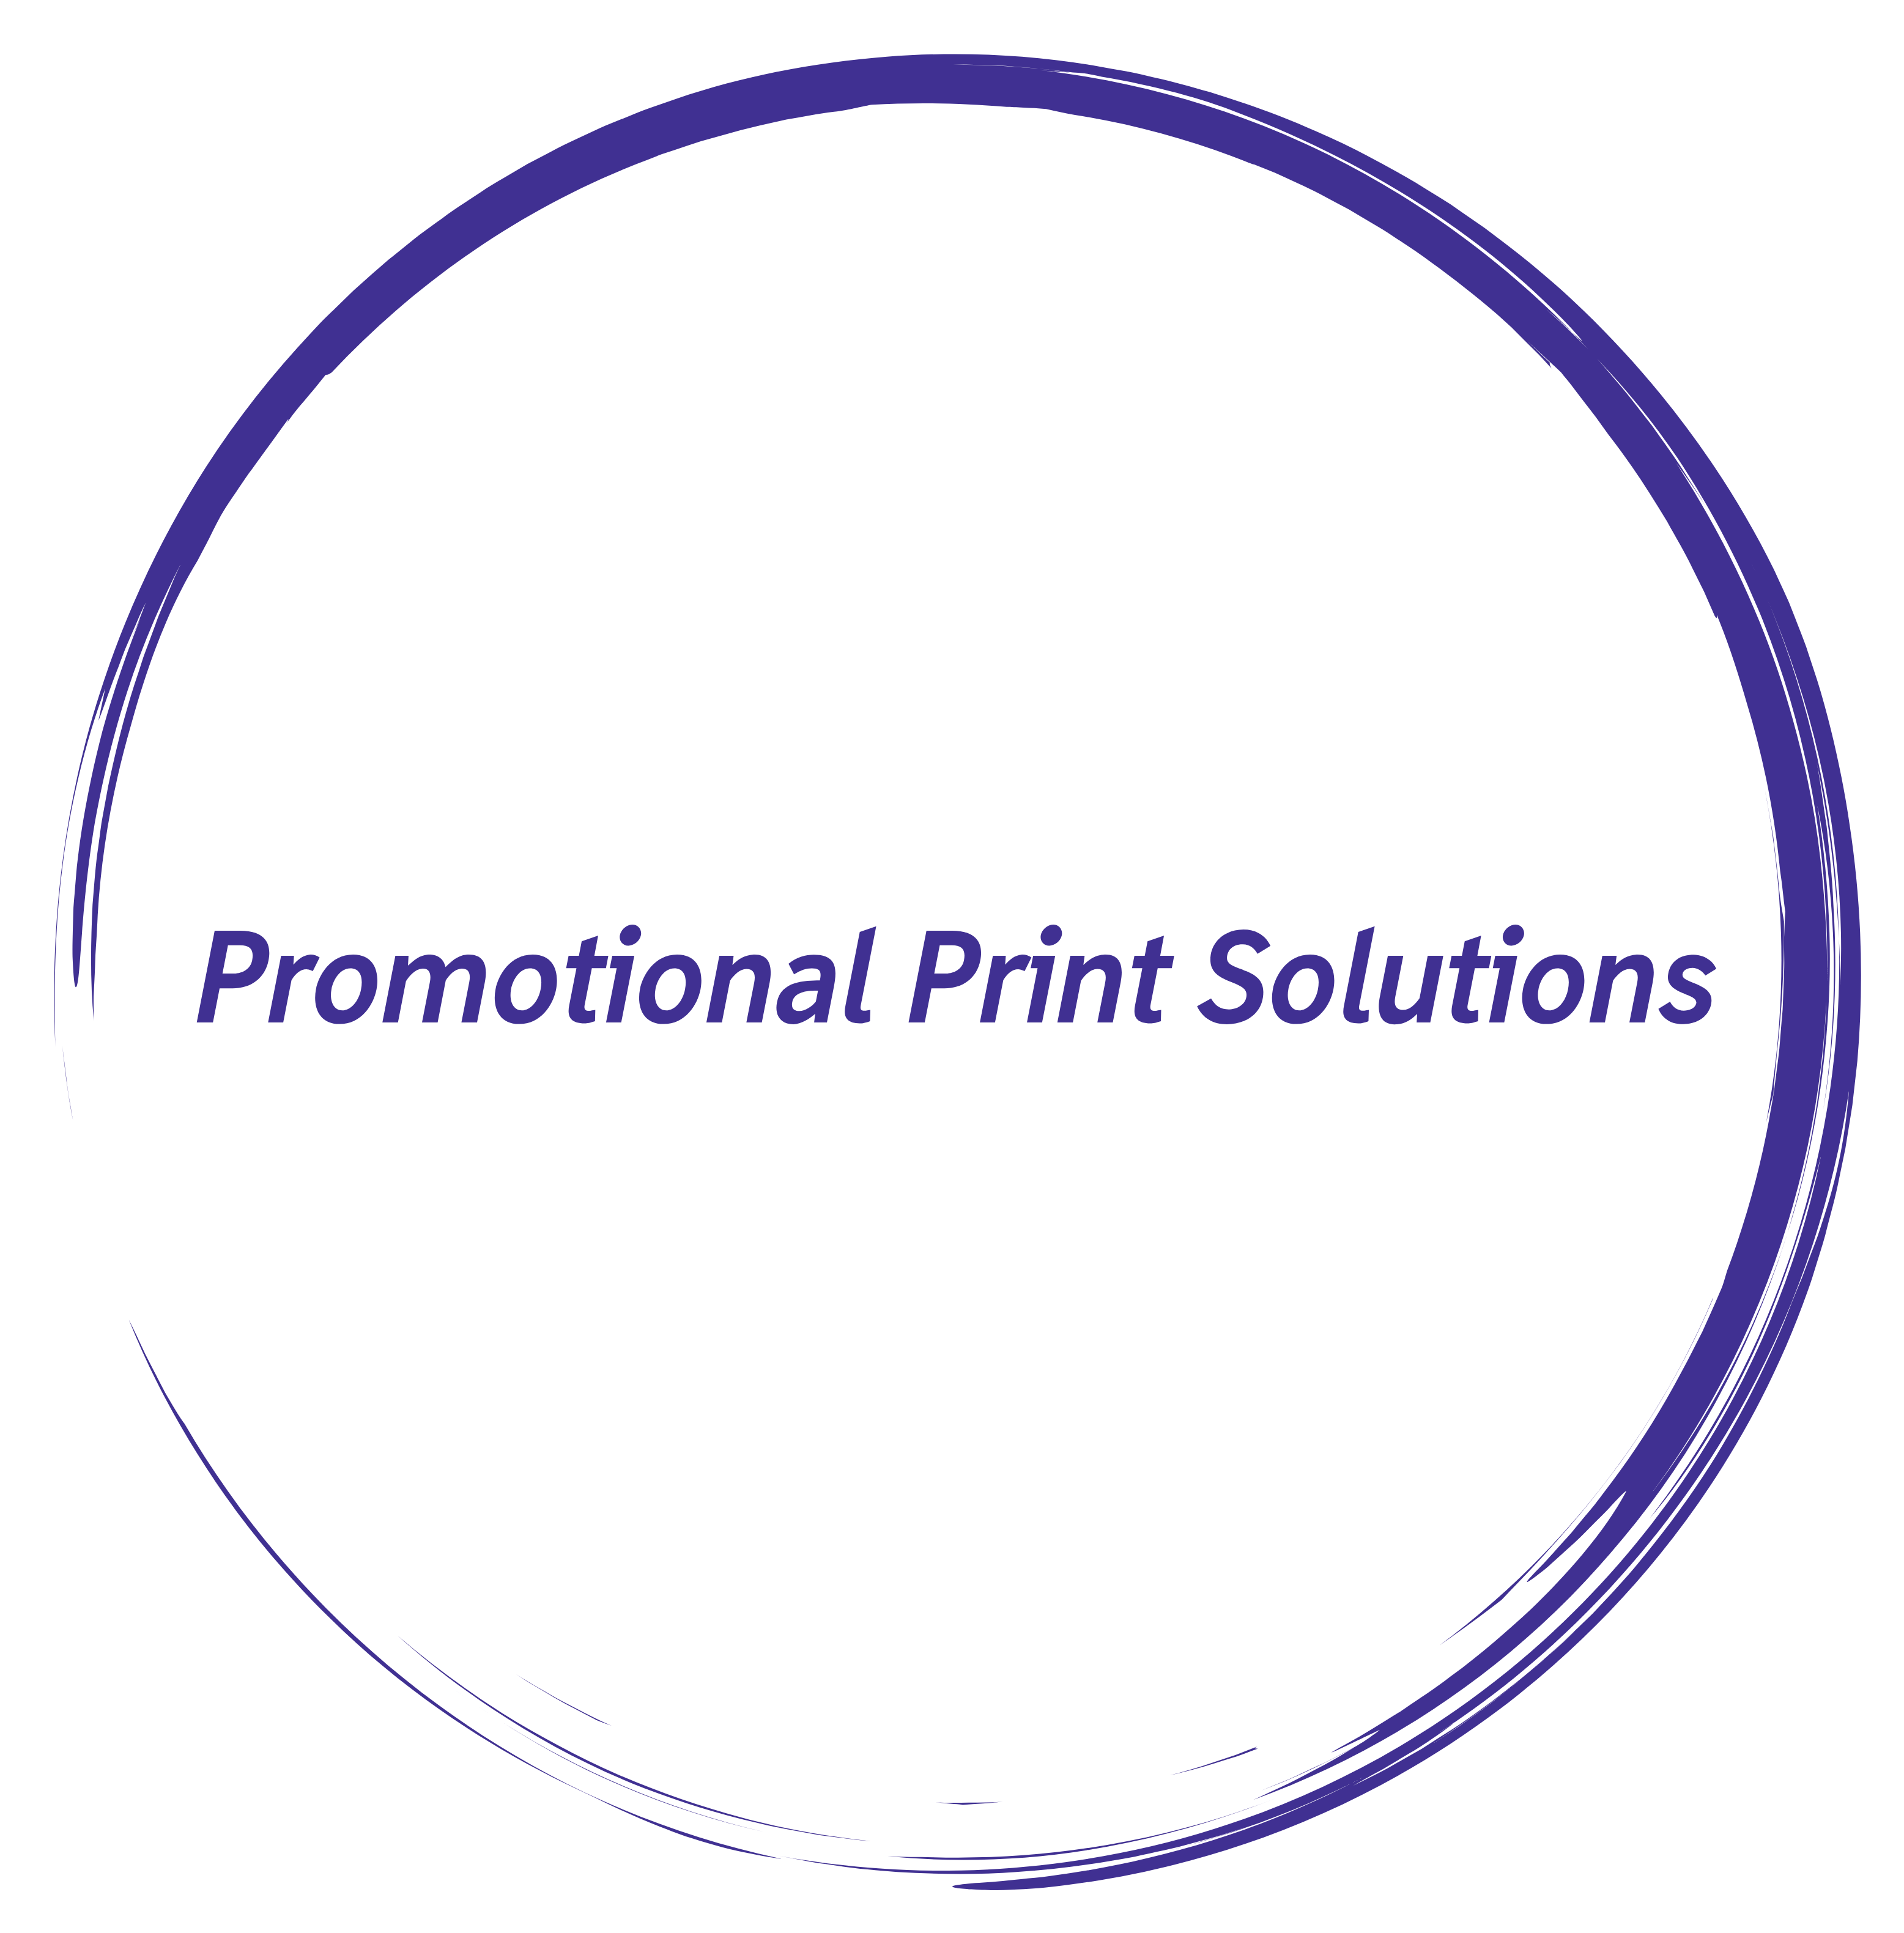 Promotional Print Solutions Logo